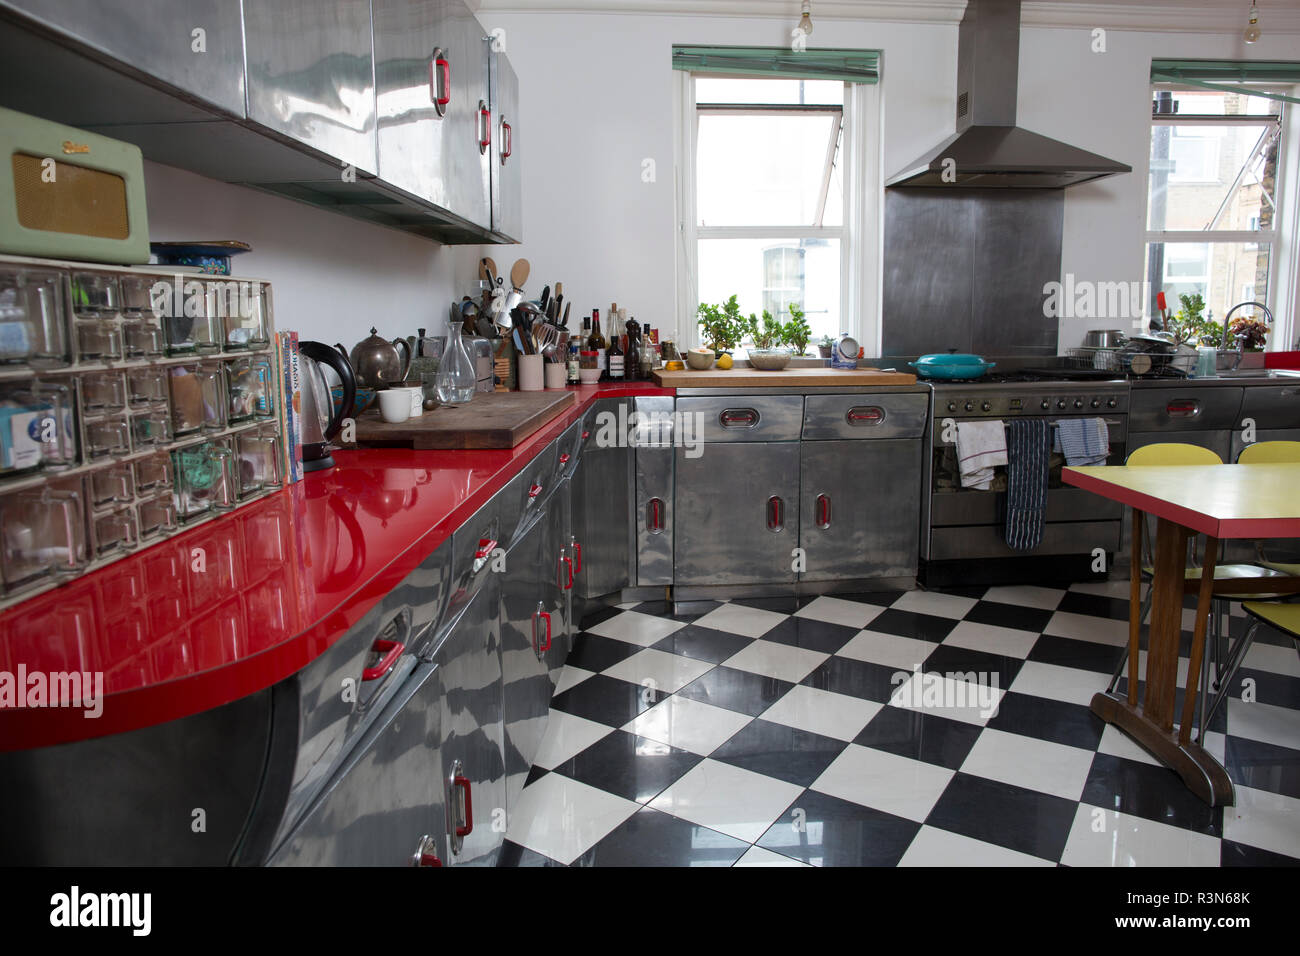 Fifties retro kitchen made by the company that manufactured Spitfires and Lancaster Bombers with a surplus of aircraft-grade aluminium, London, UK - Stock Image